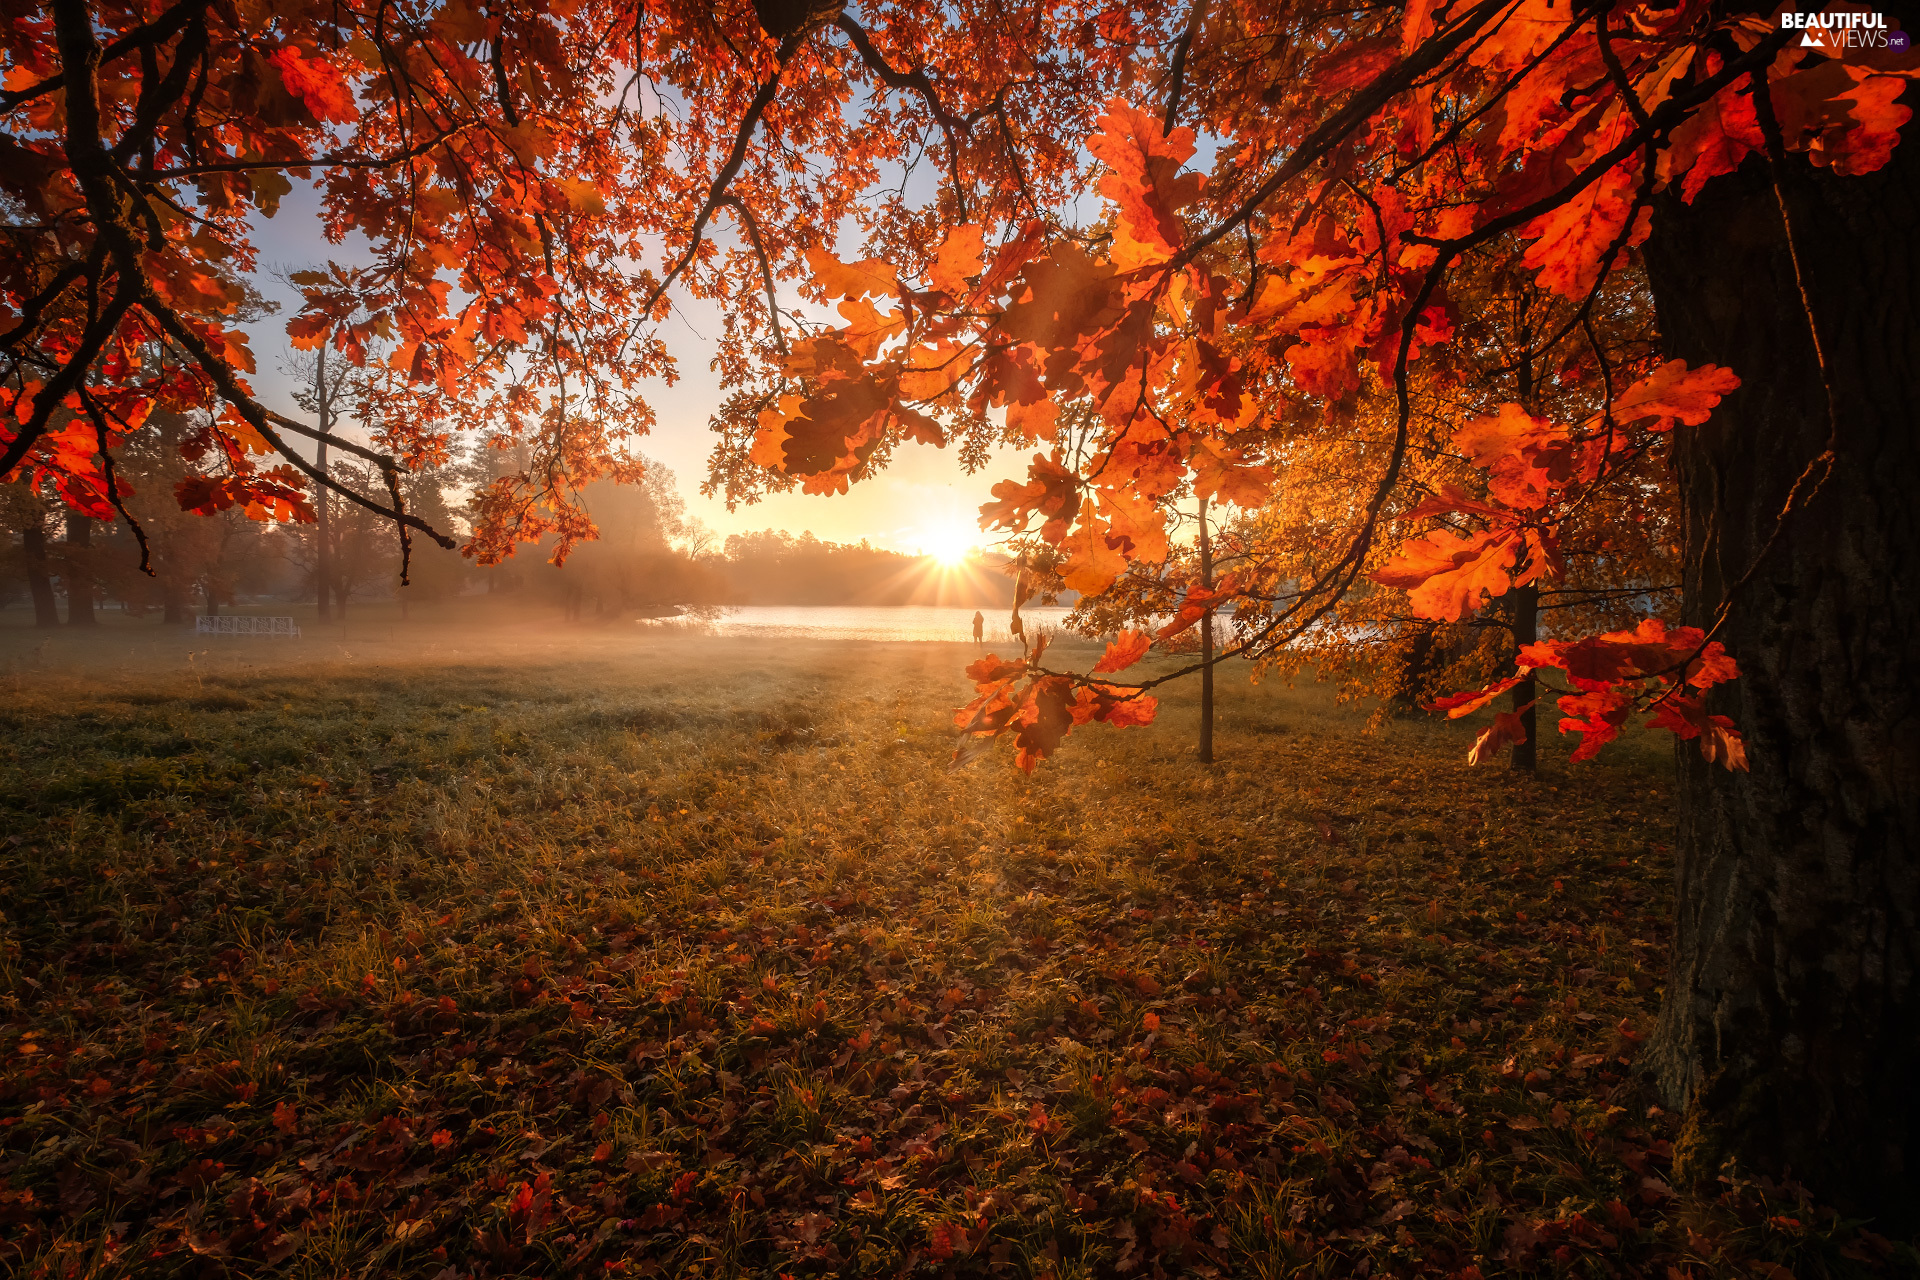 trees, autumn, viewes, oak, rays of the Sun, lake, Leaf, Fog, branch pics